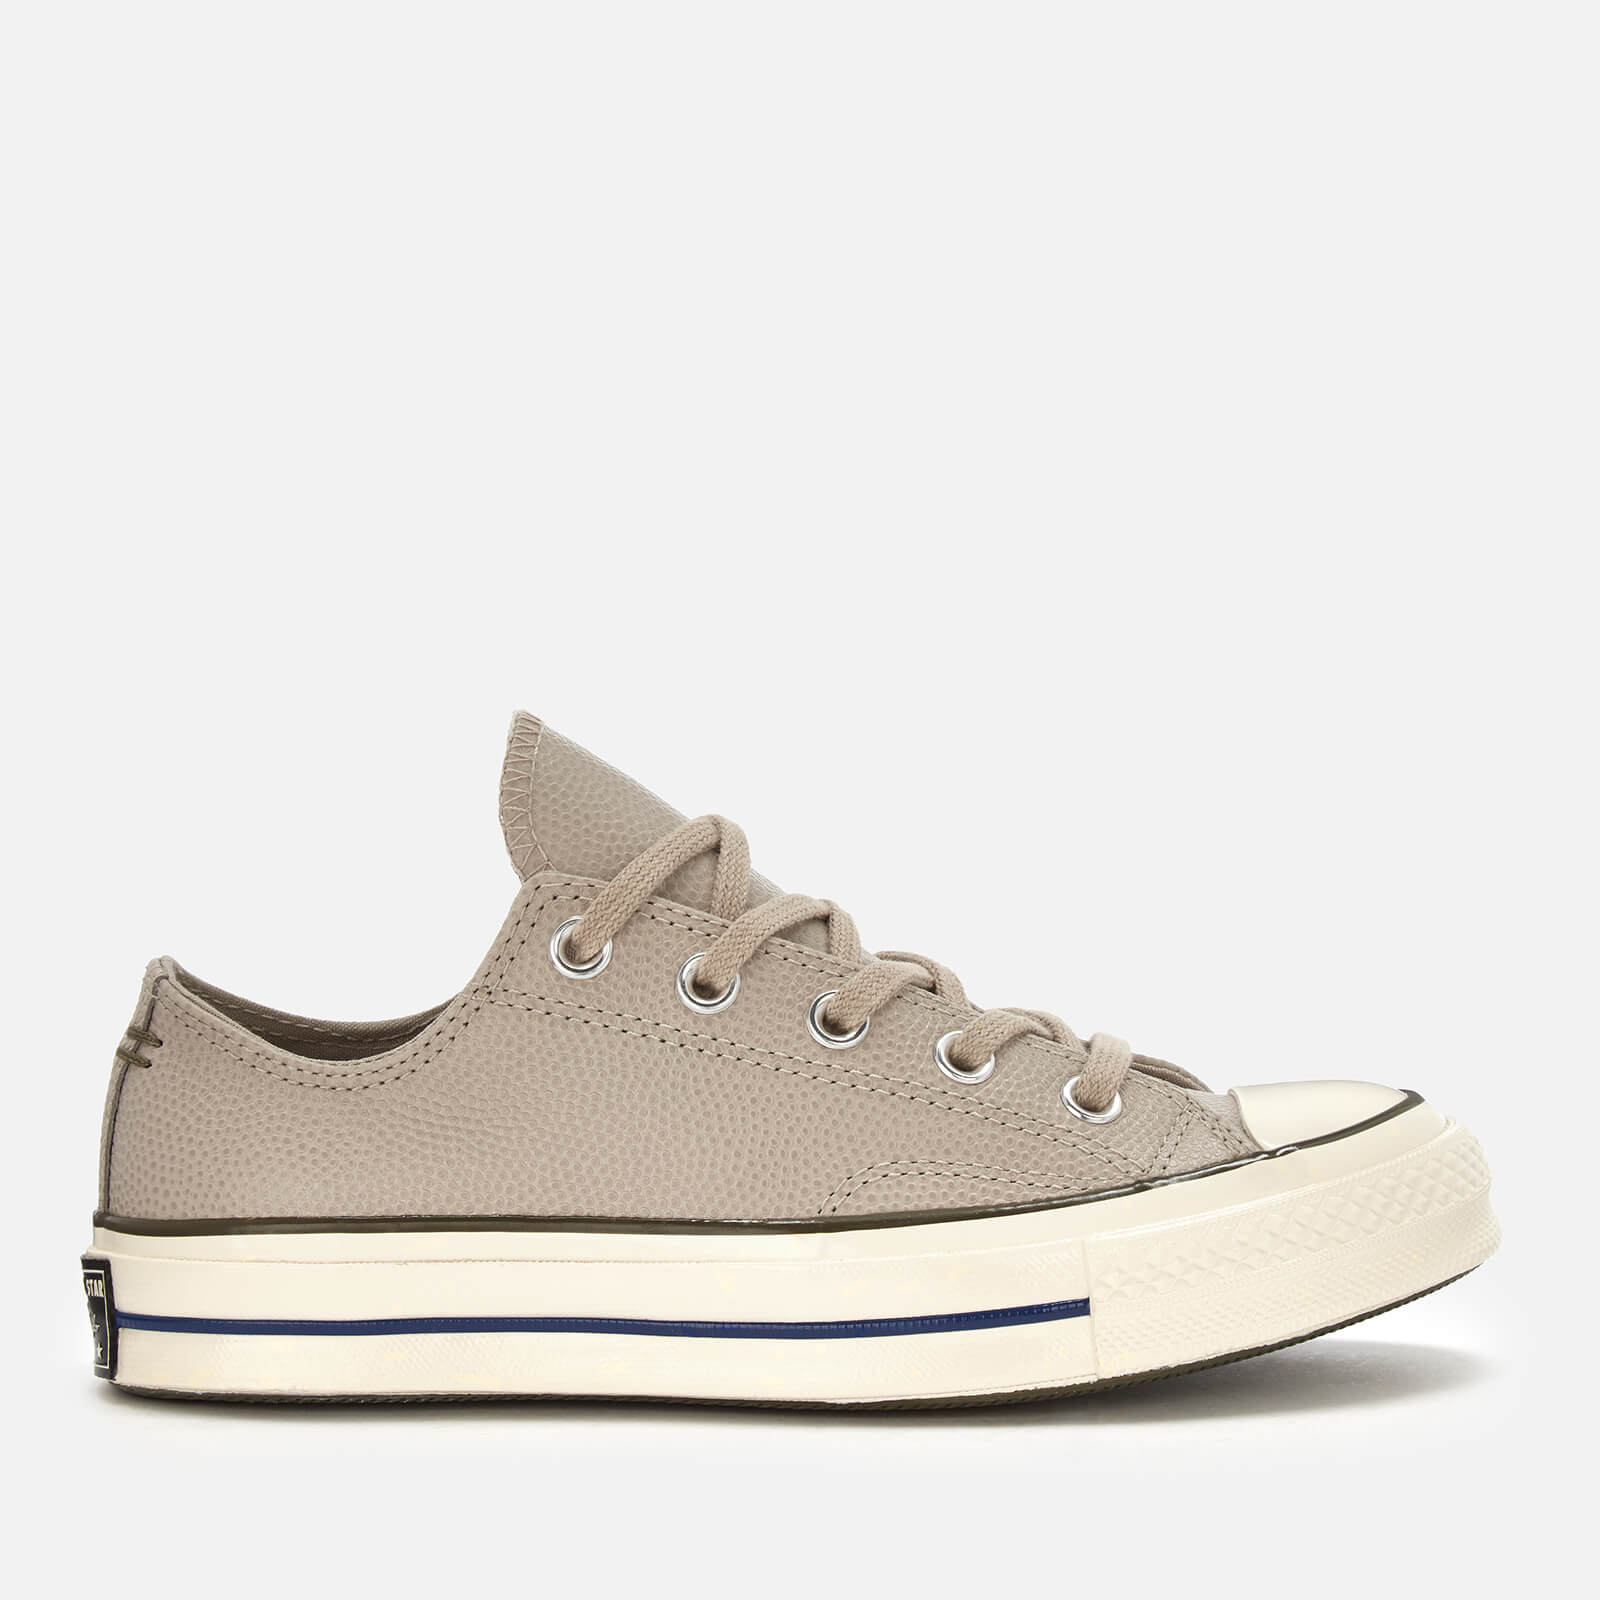 7d0317bdccb4 Converse Women s Chuck Taylor All Star 70 Ox Trainers - Papyrus Field  Surplus Egret - Free UK Delivery over £50